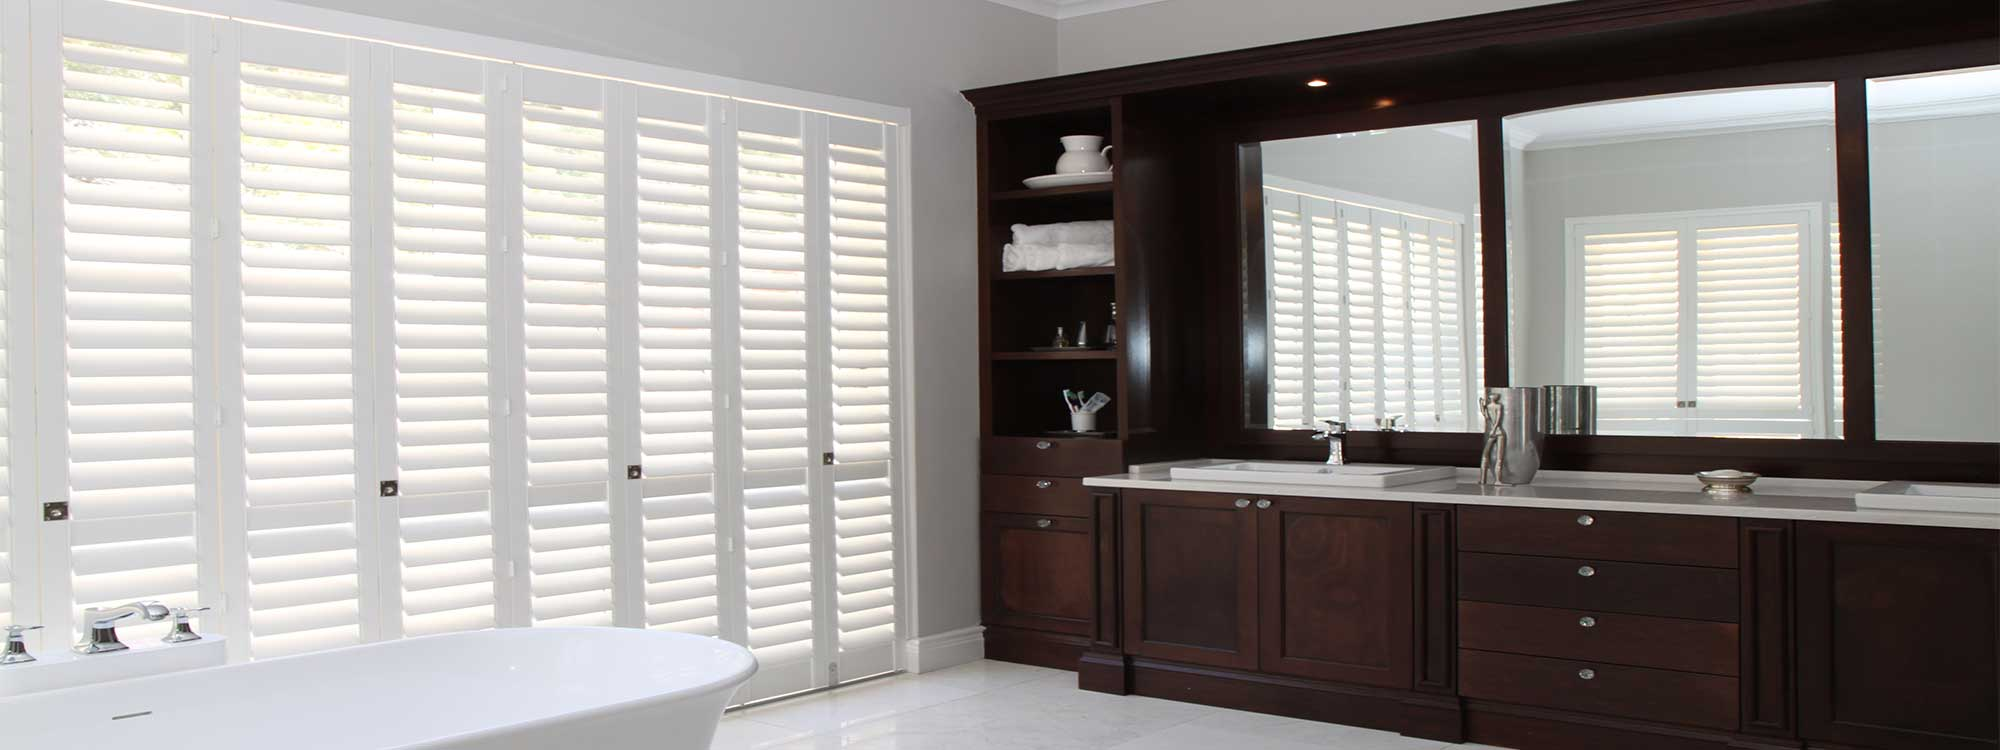 Decowood-shutters-bathroom-cabinets